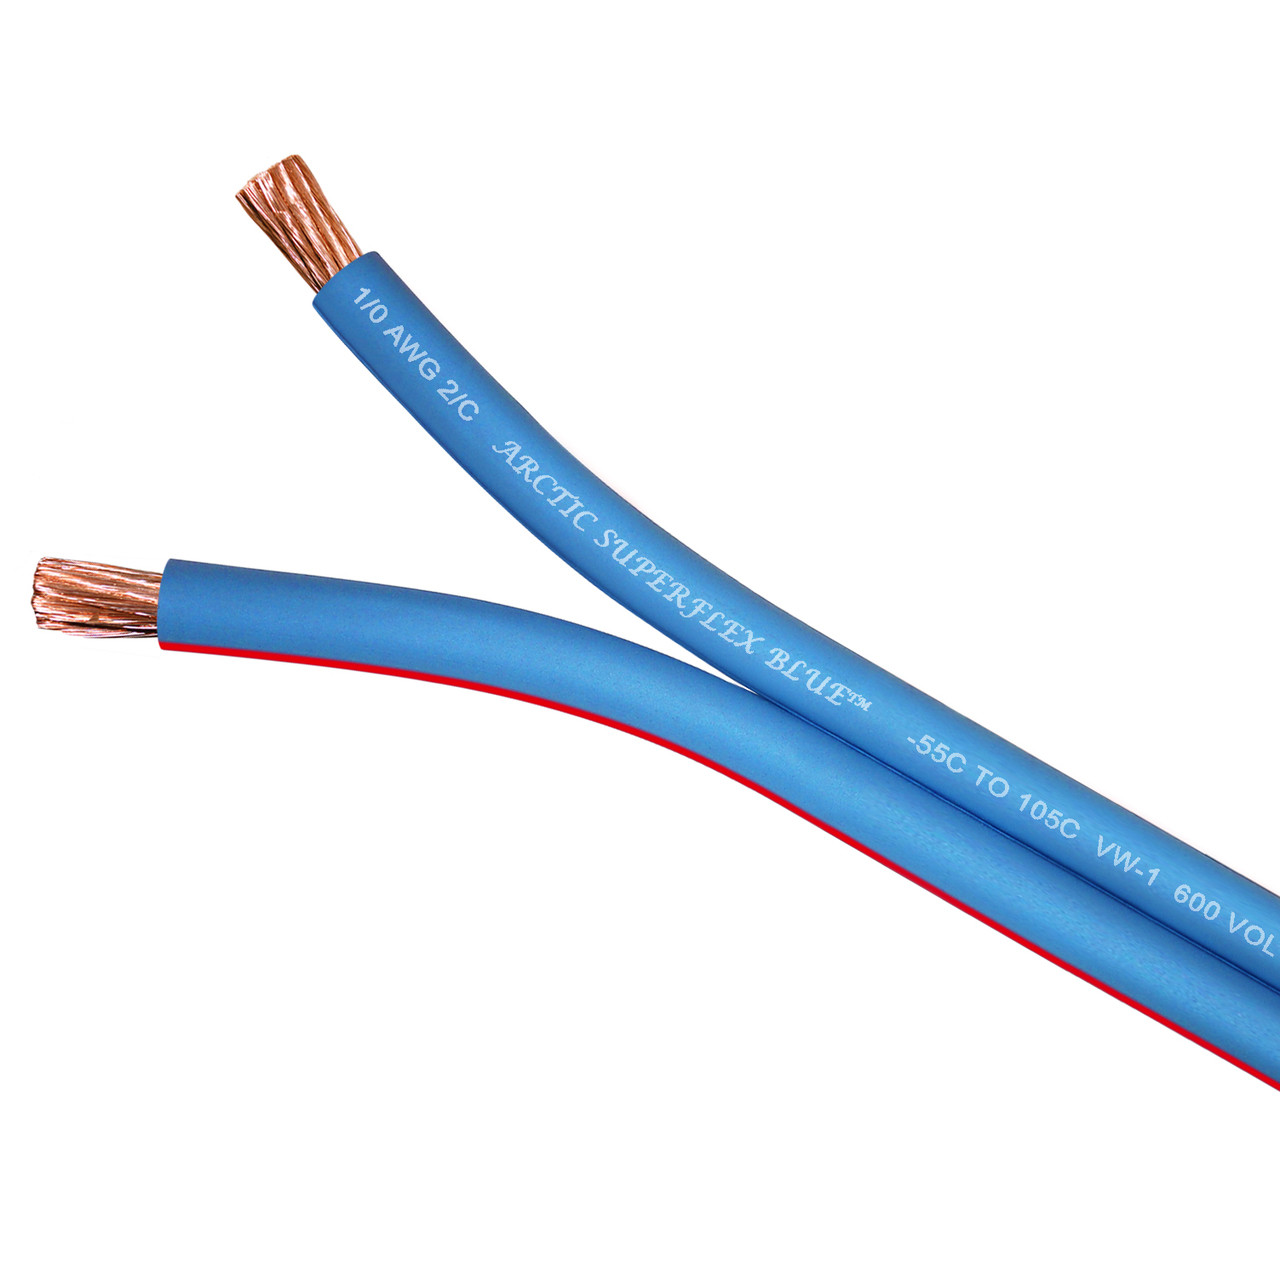 Arctic Superflex Blue conductors separate smoothly and evenly for jumper cables, motor leads, and other applications